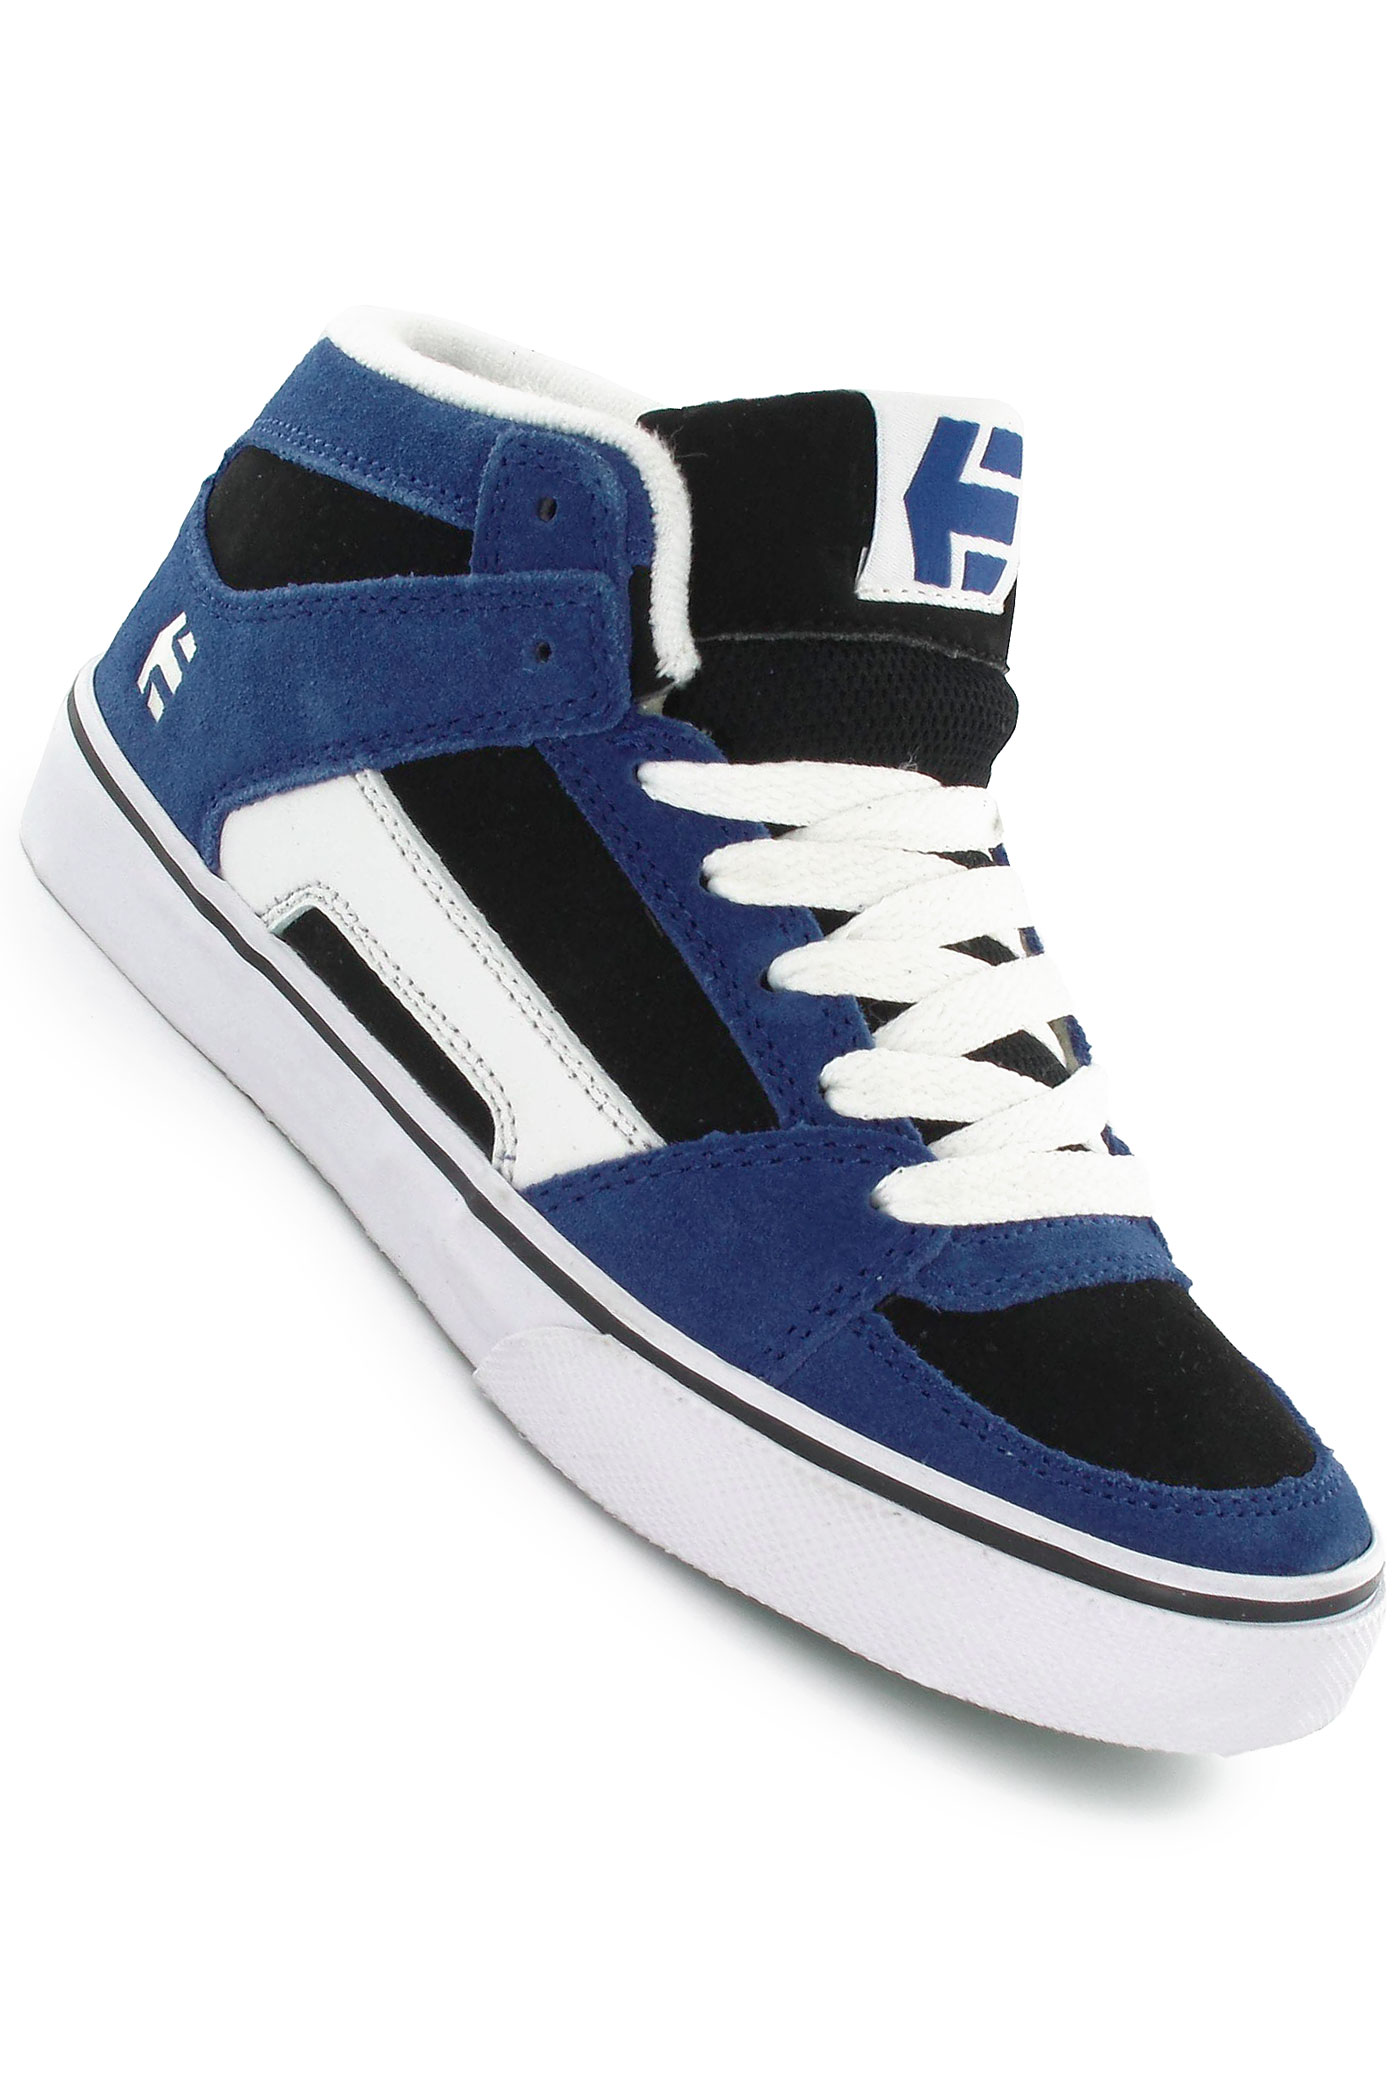 Etnies Rvm Blue Etnies Rvm Suede Synthetic